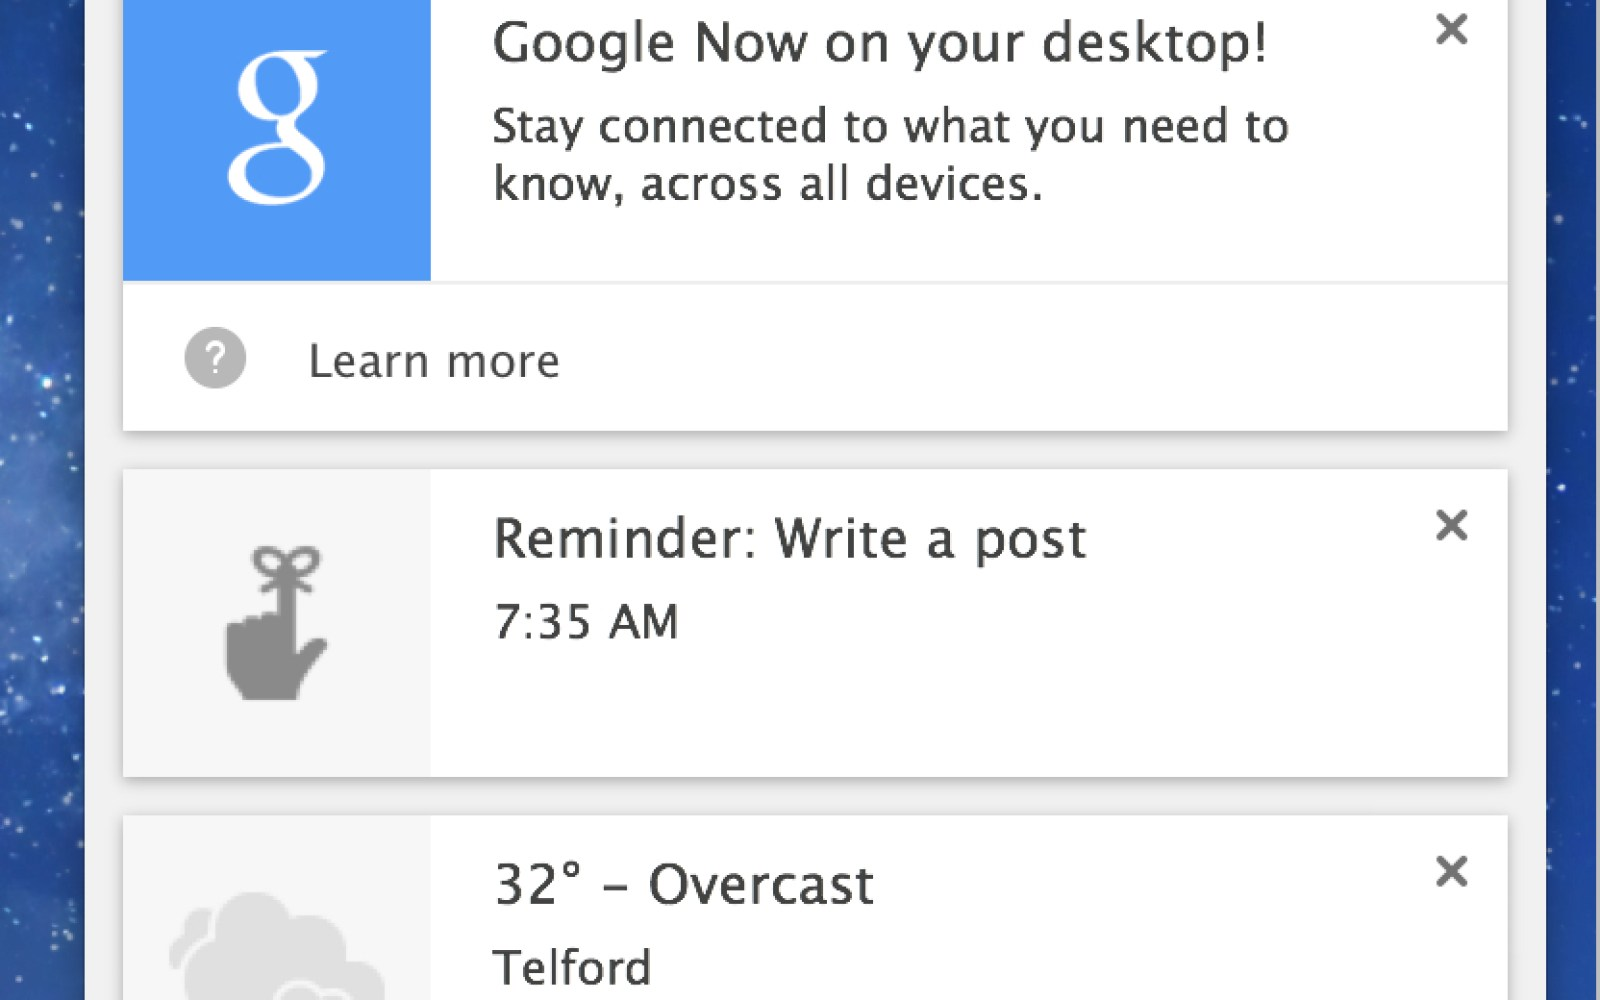 Google brings Google Now notifications to Chrome beta for desktop users